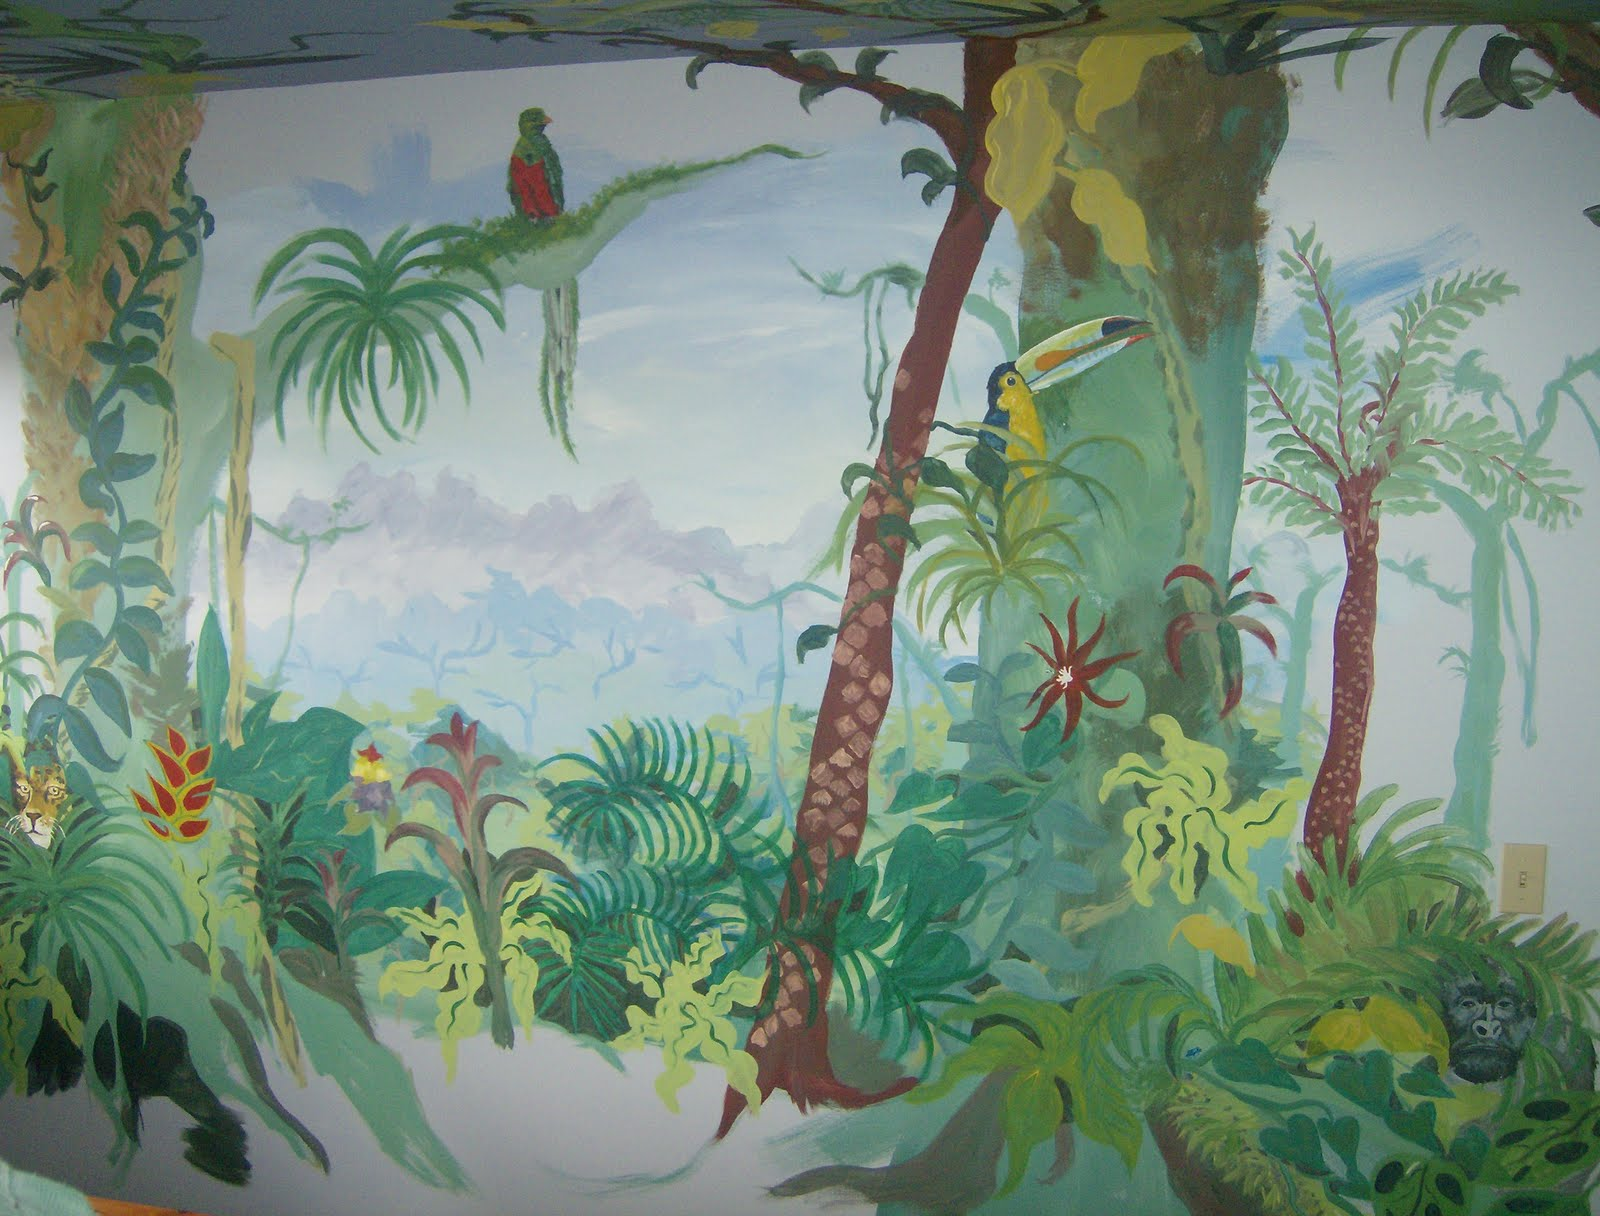 Photo Mural Homegrown Murals Rainforest Mural